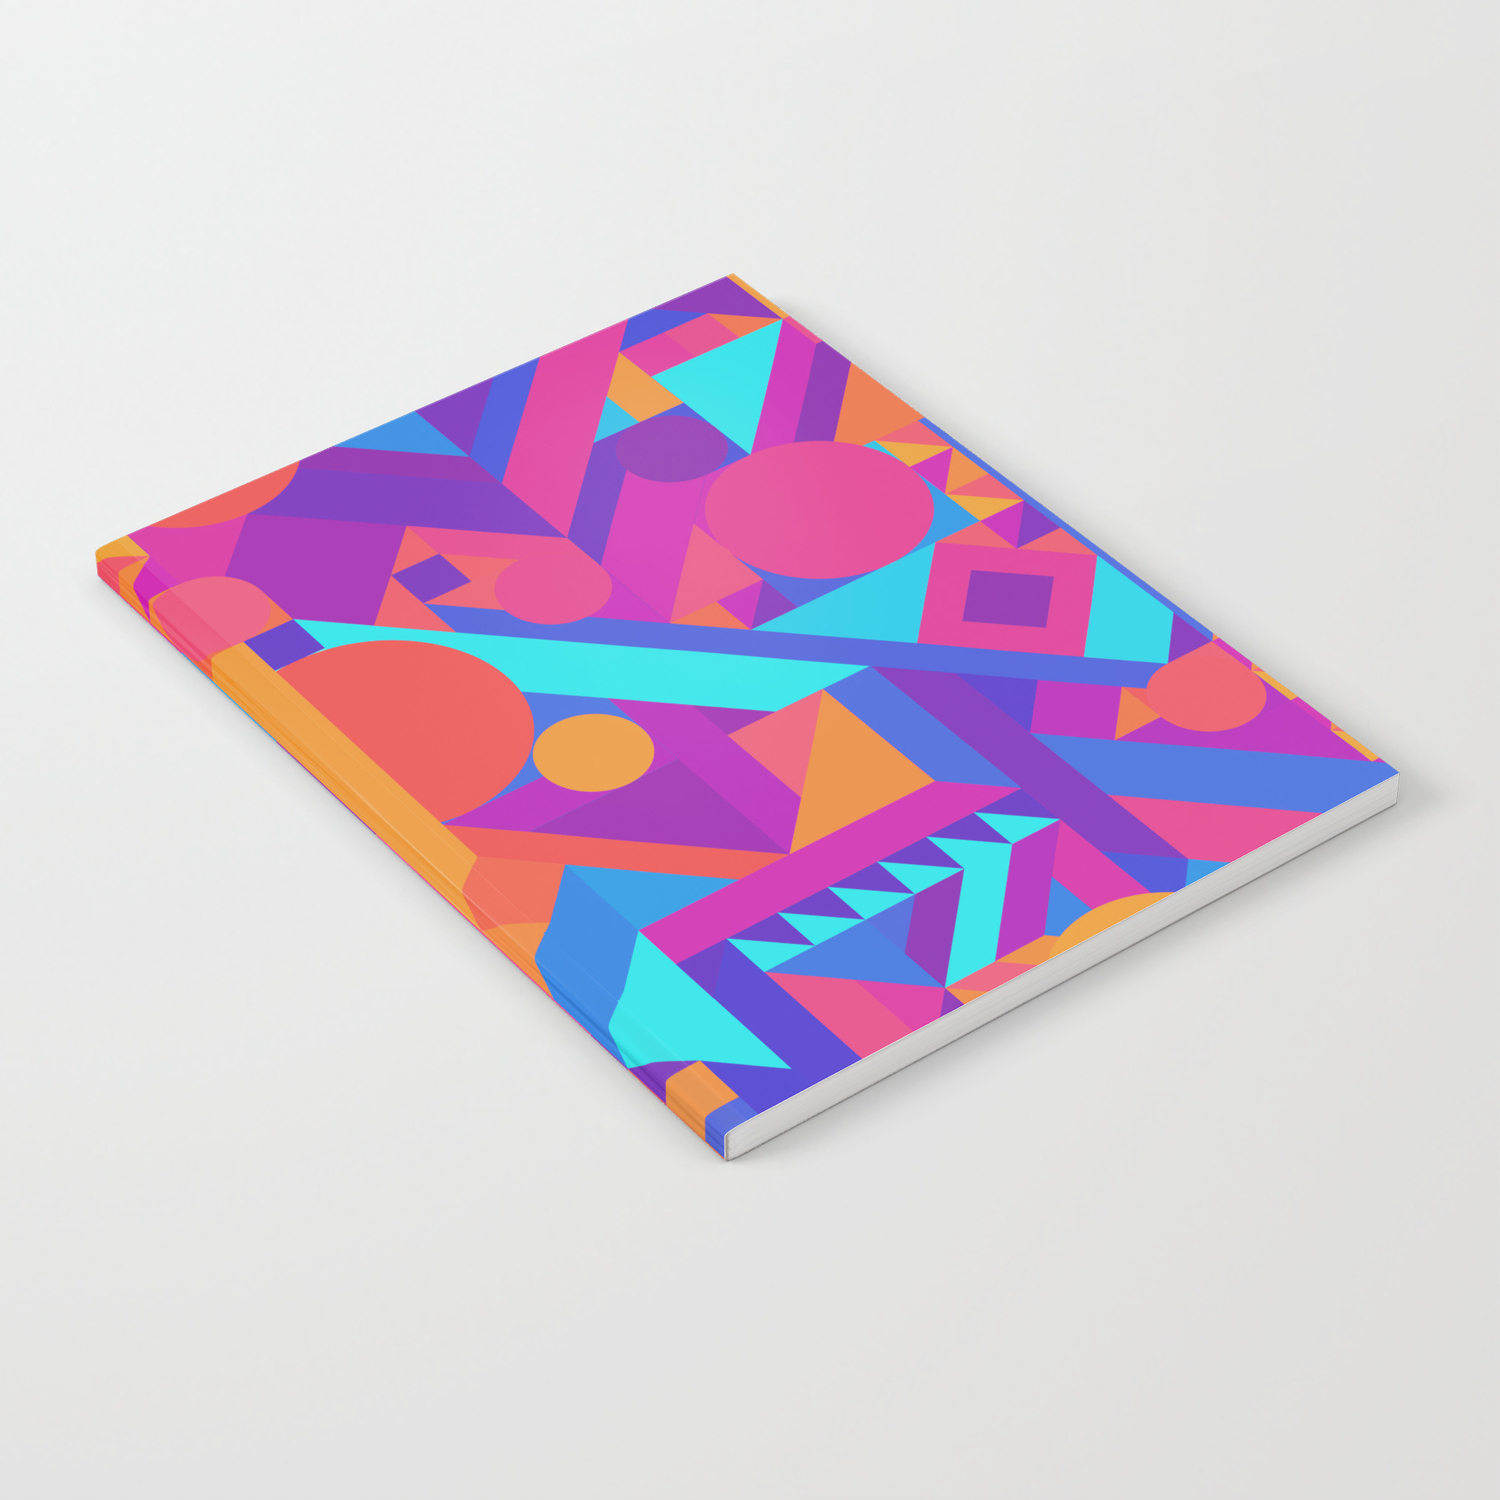 Geometry shapes pattern print warm cool color scheme notebook